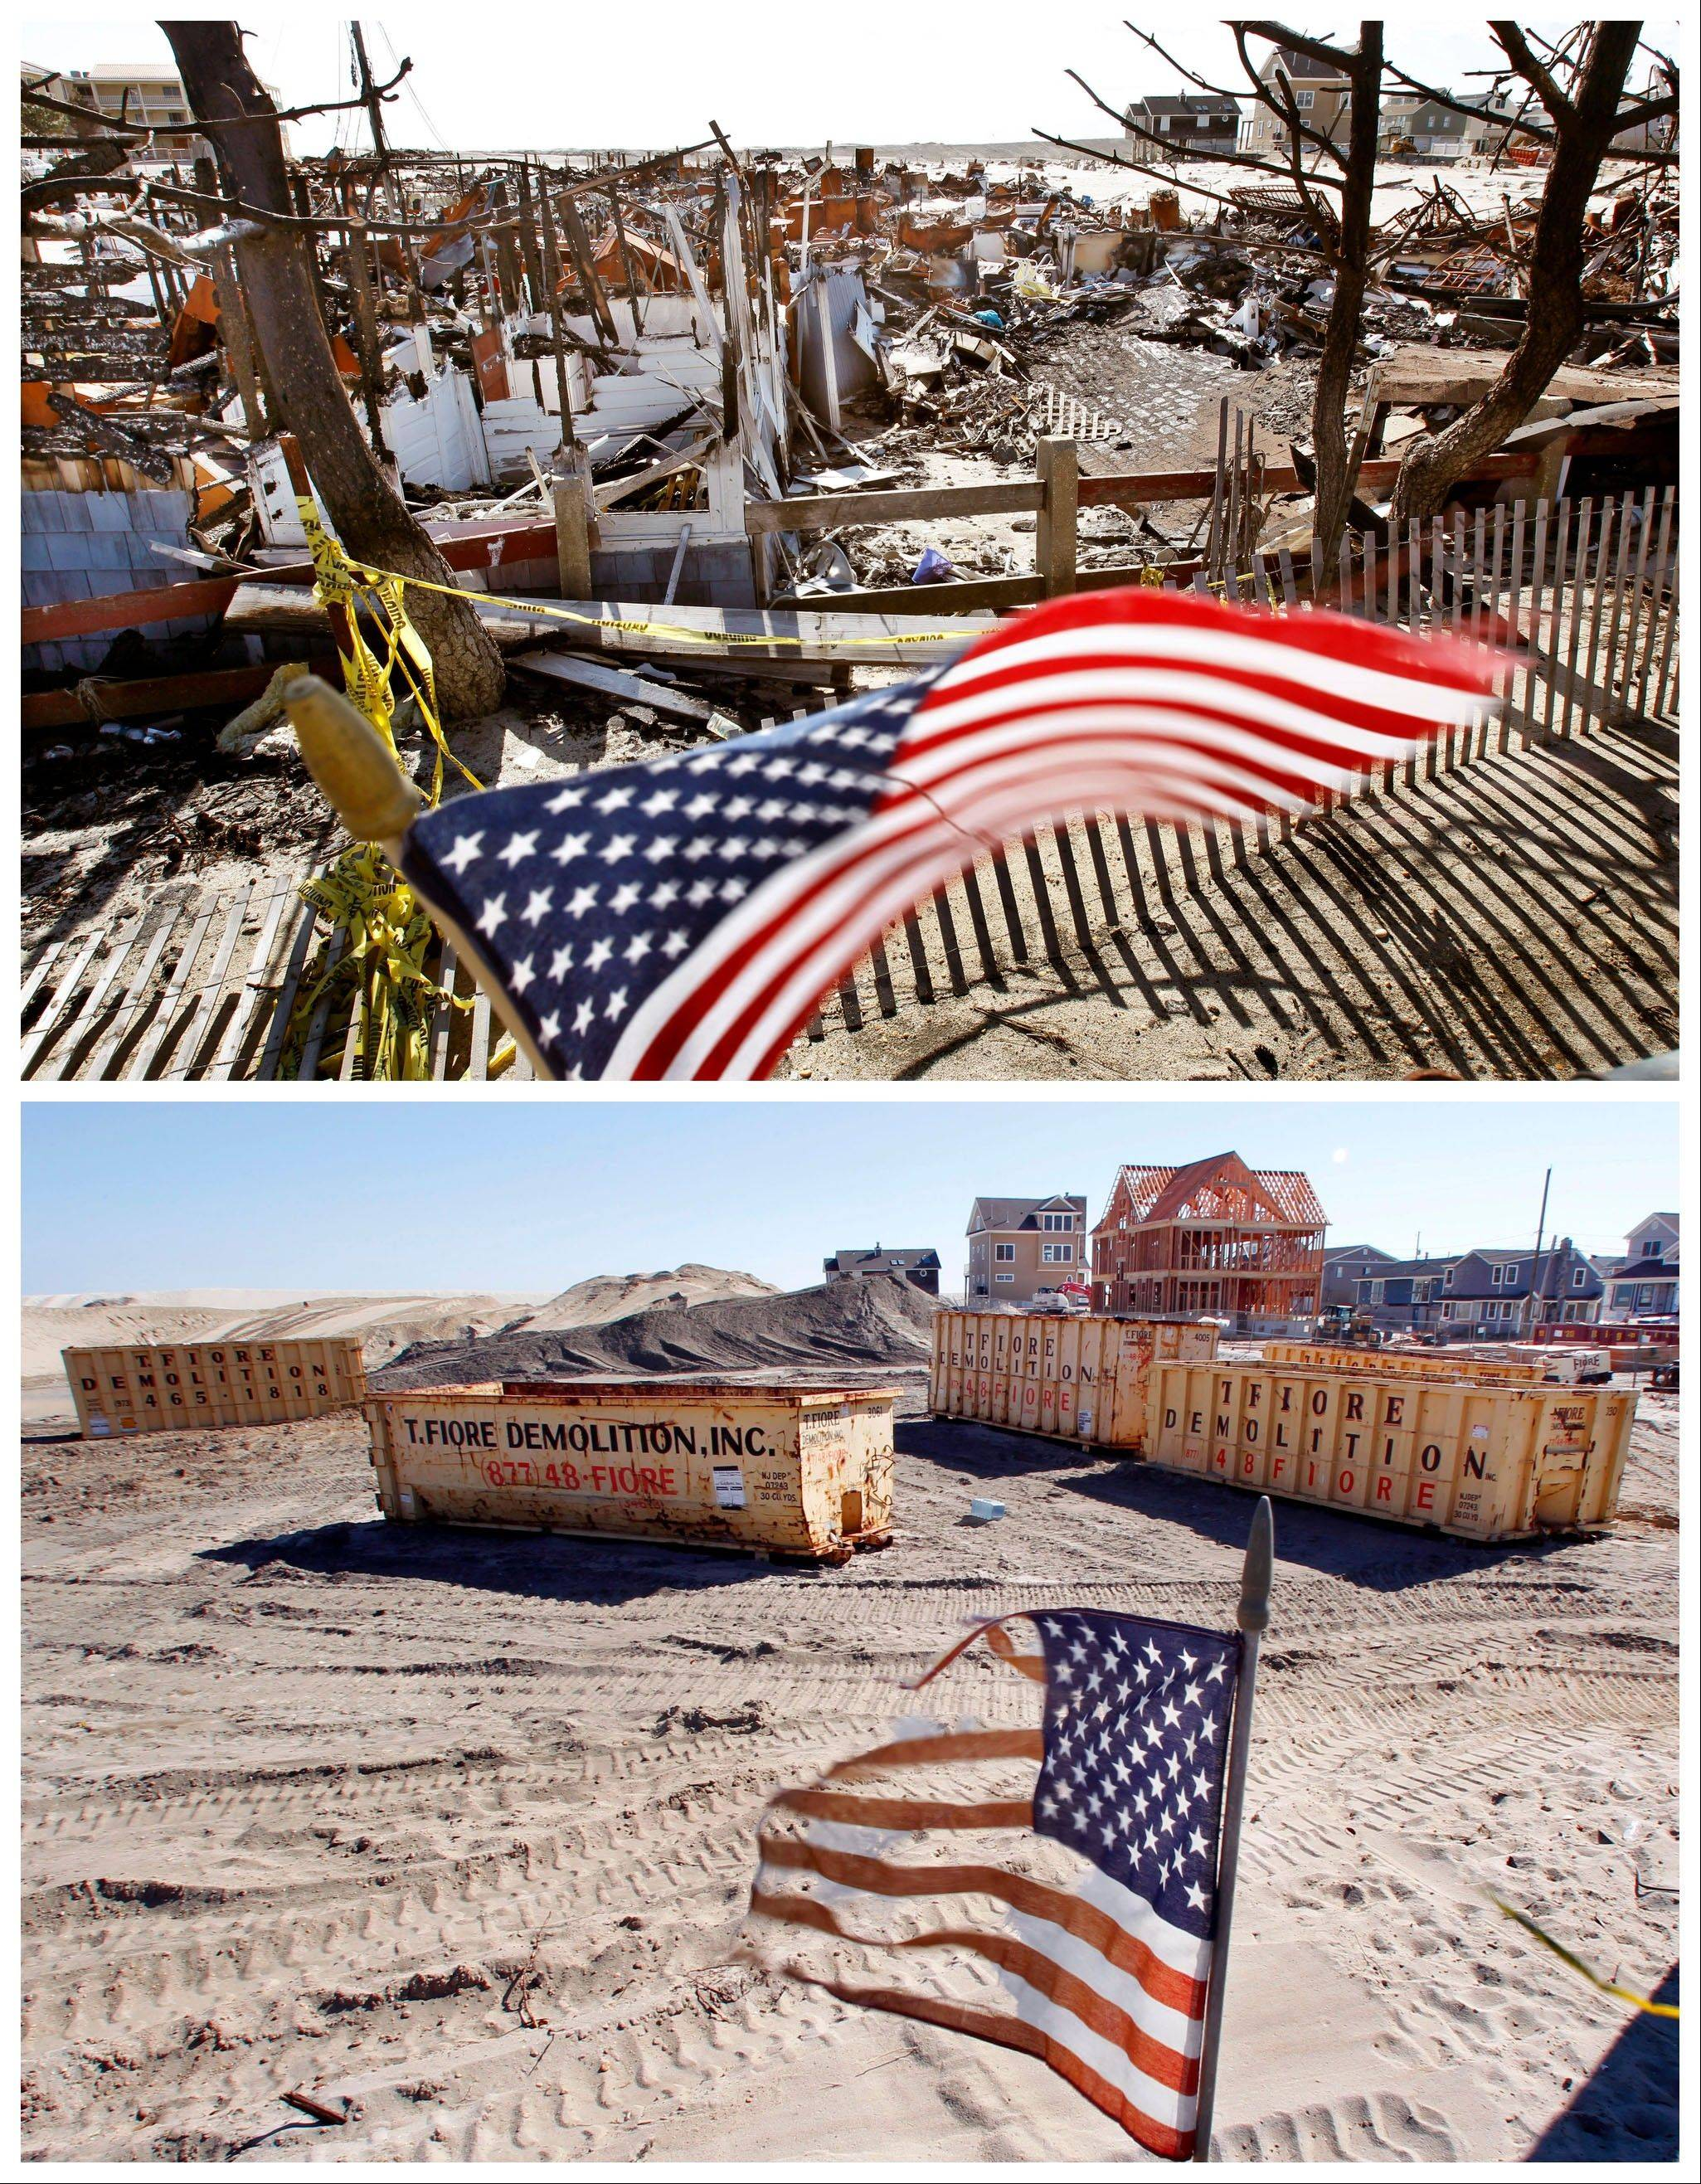 This combination of Thursday, April 25, 2013 and Sunday, Oct. 13, 2013 photos shows U.S. flags at a site in Brick, N.J., around the burned remains of more than 60 small bungalows at Camp Osborn.